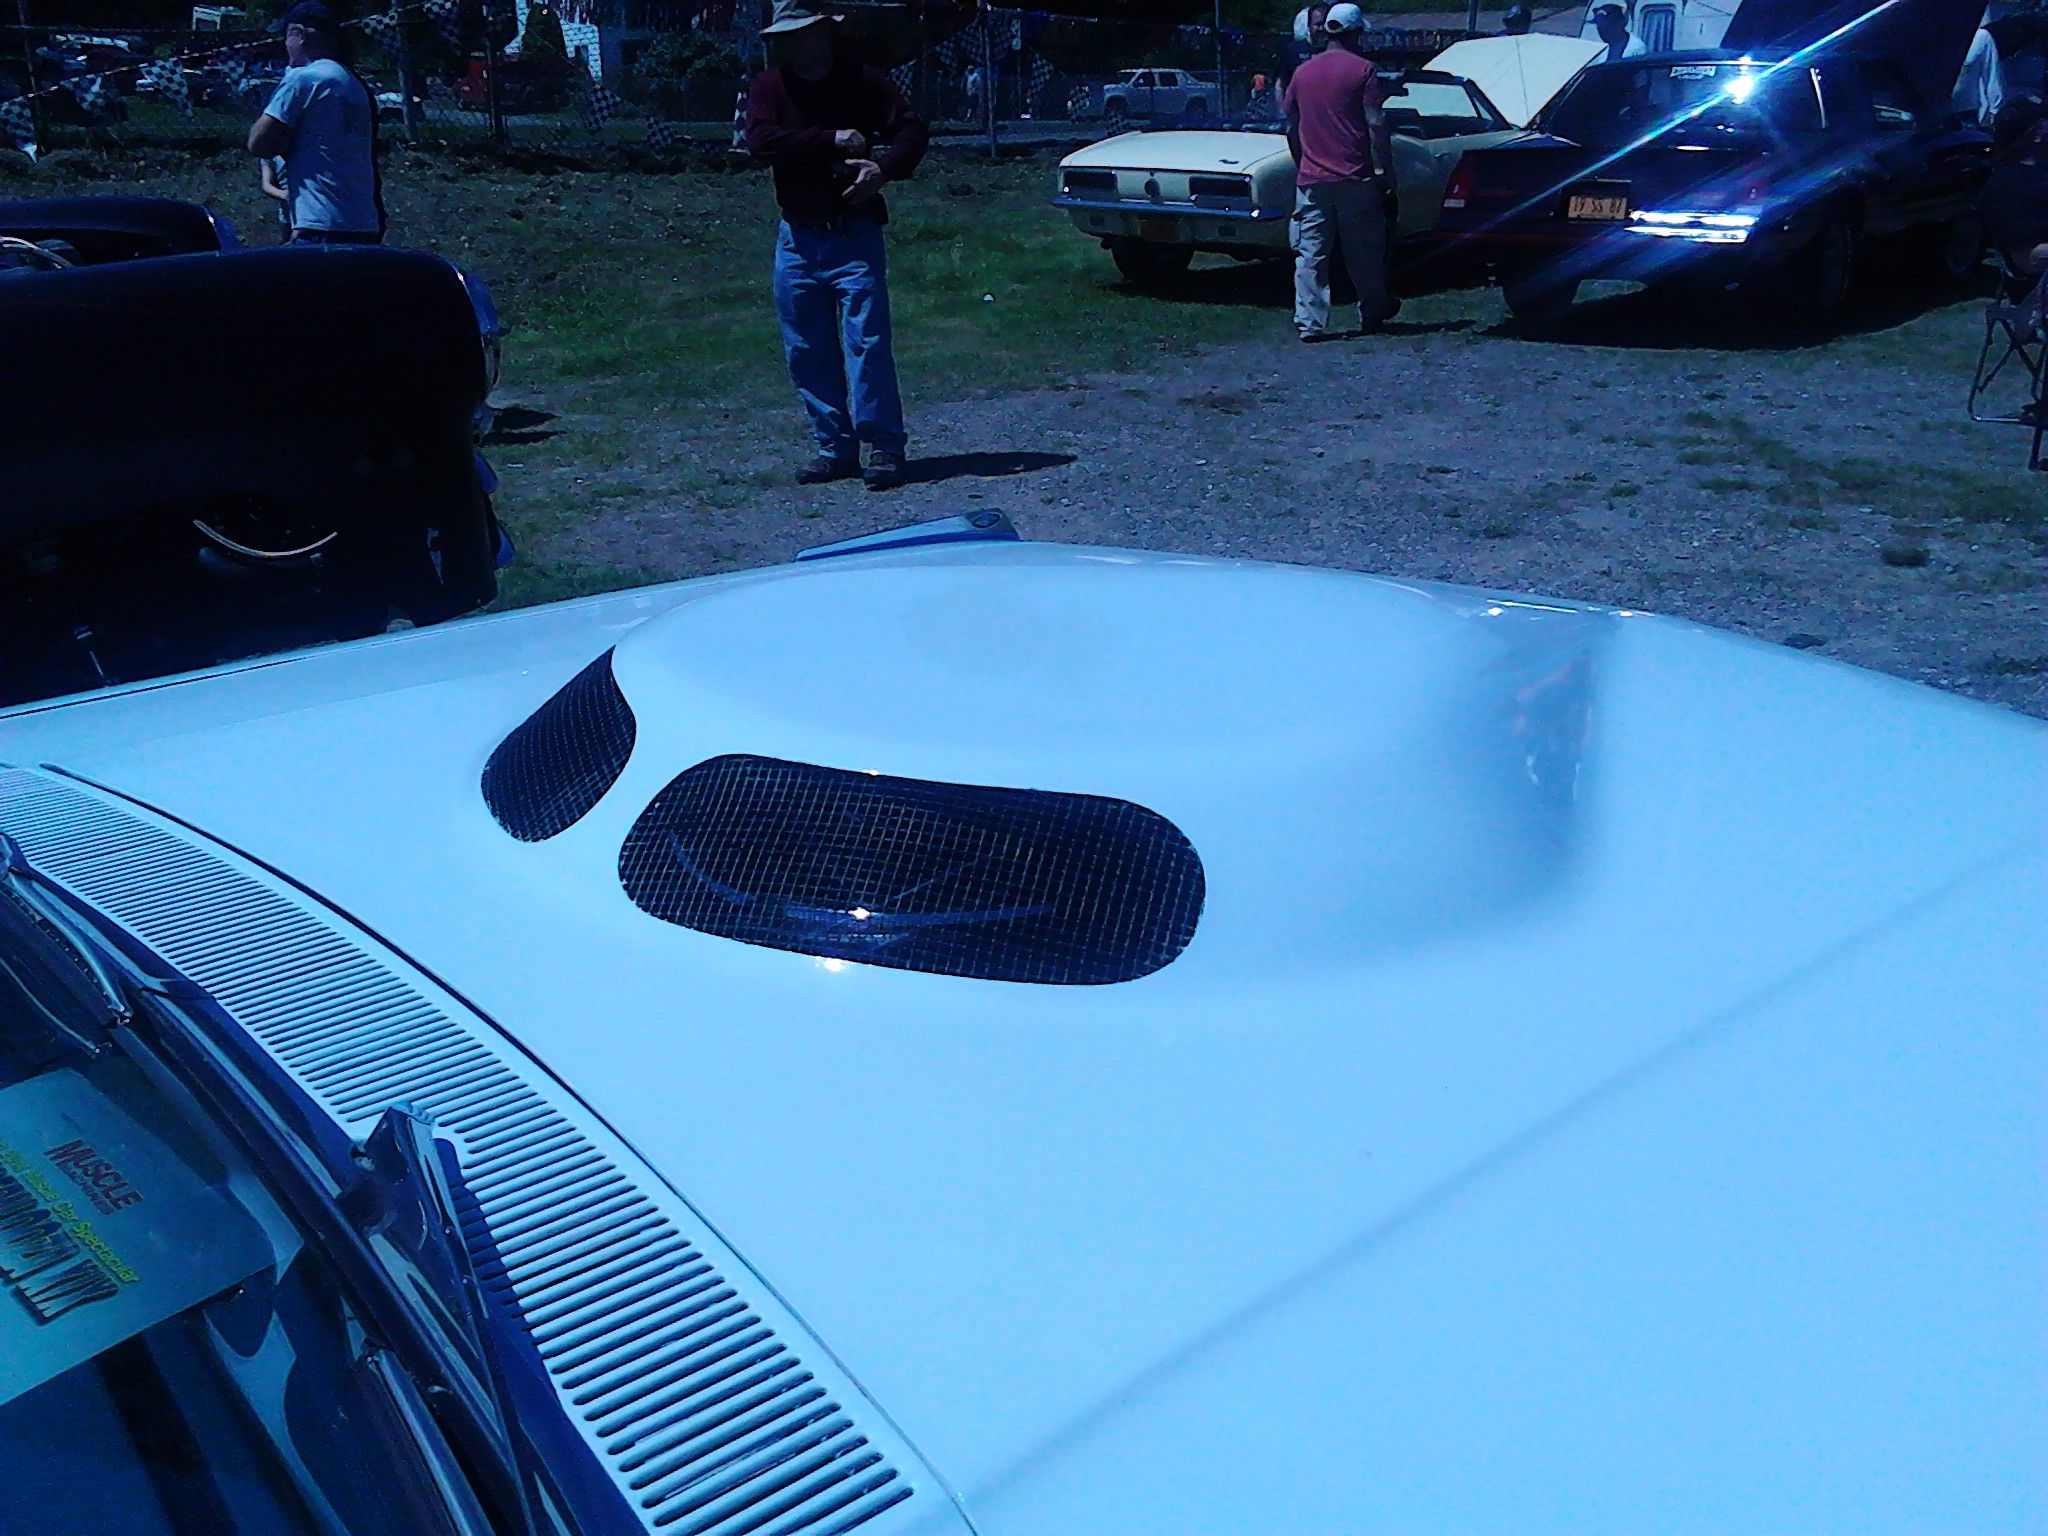 Ford Thunderbolt,T-bolt tear drop hood scoop